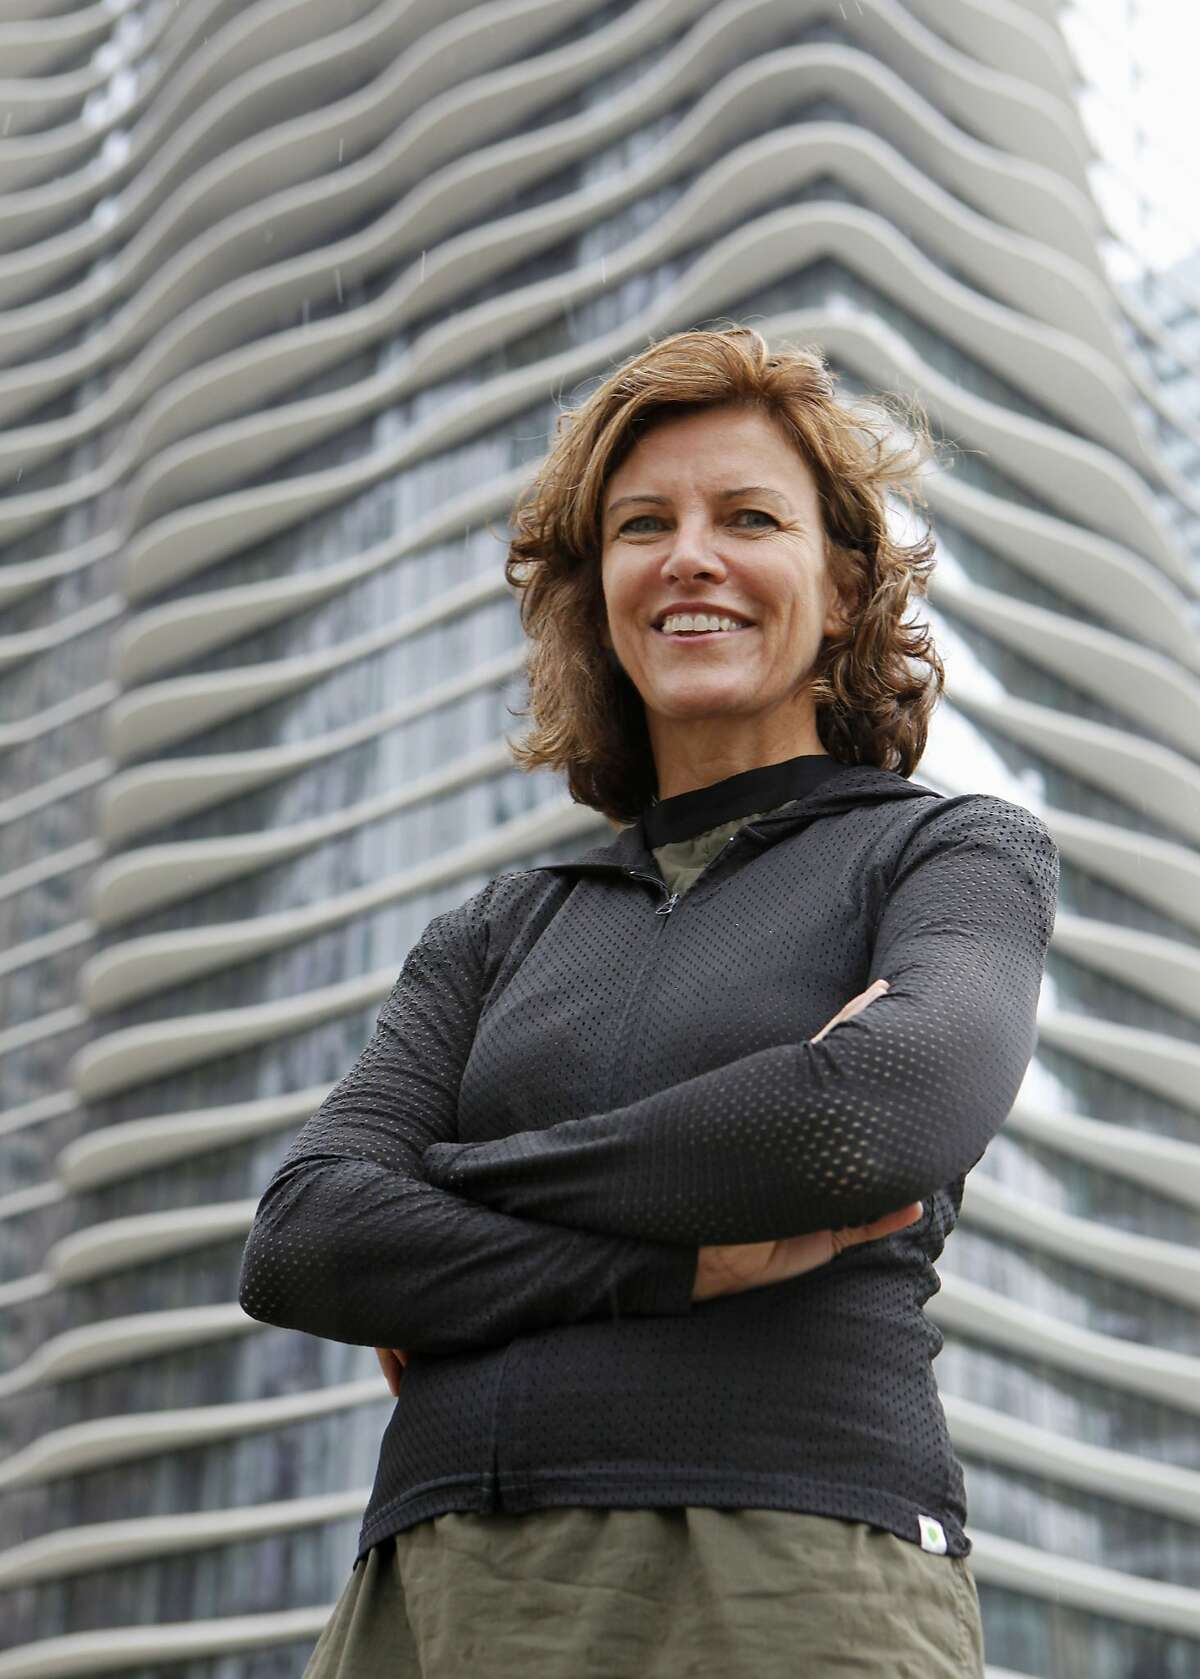 In this Sept. 14, 2011, photo provided Sept. 19, 2011 by the Chicago-based John D. and Catherine T. MacArthur Foundation, Jeanne Gang, 47, an architect focusing on the geographic, social and environmental factors of residential, educational and commercial buildings, poses for a photo in Chicago. Gang is one of 22 recipients of this year's MacArthur Foundation